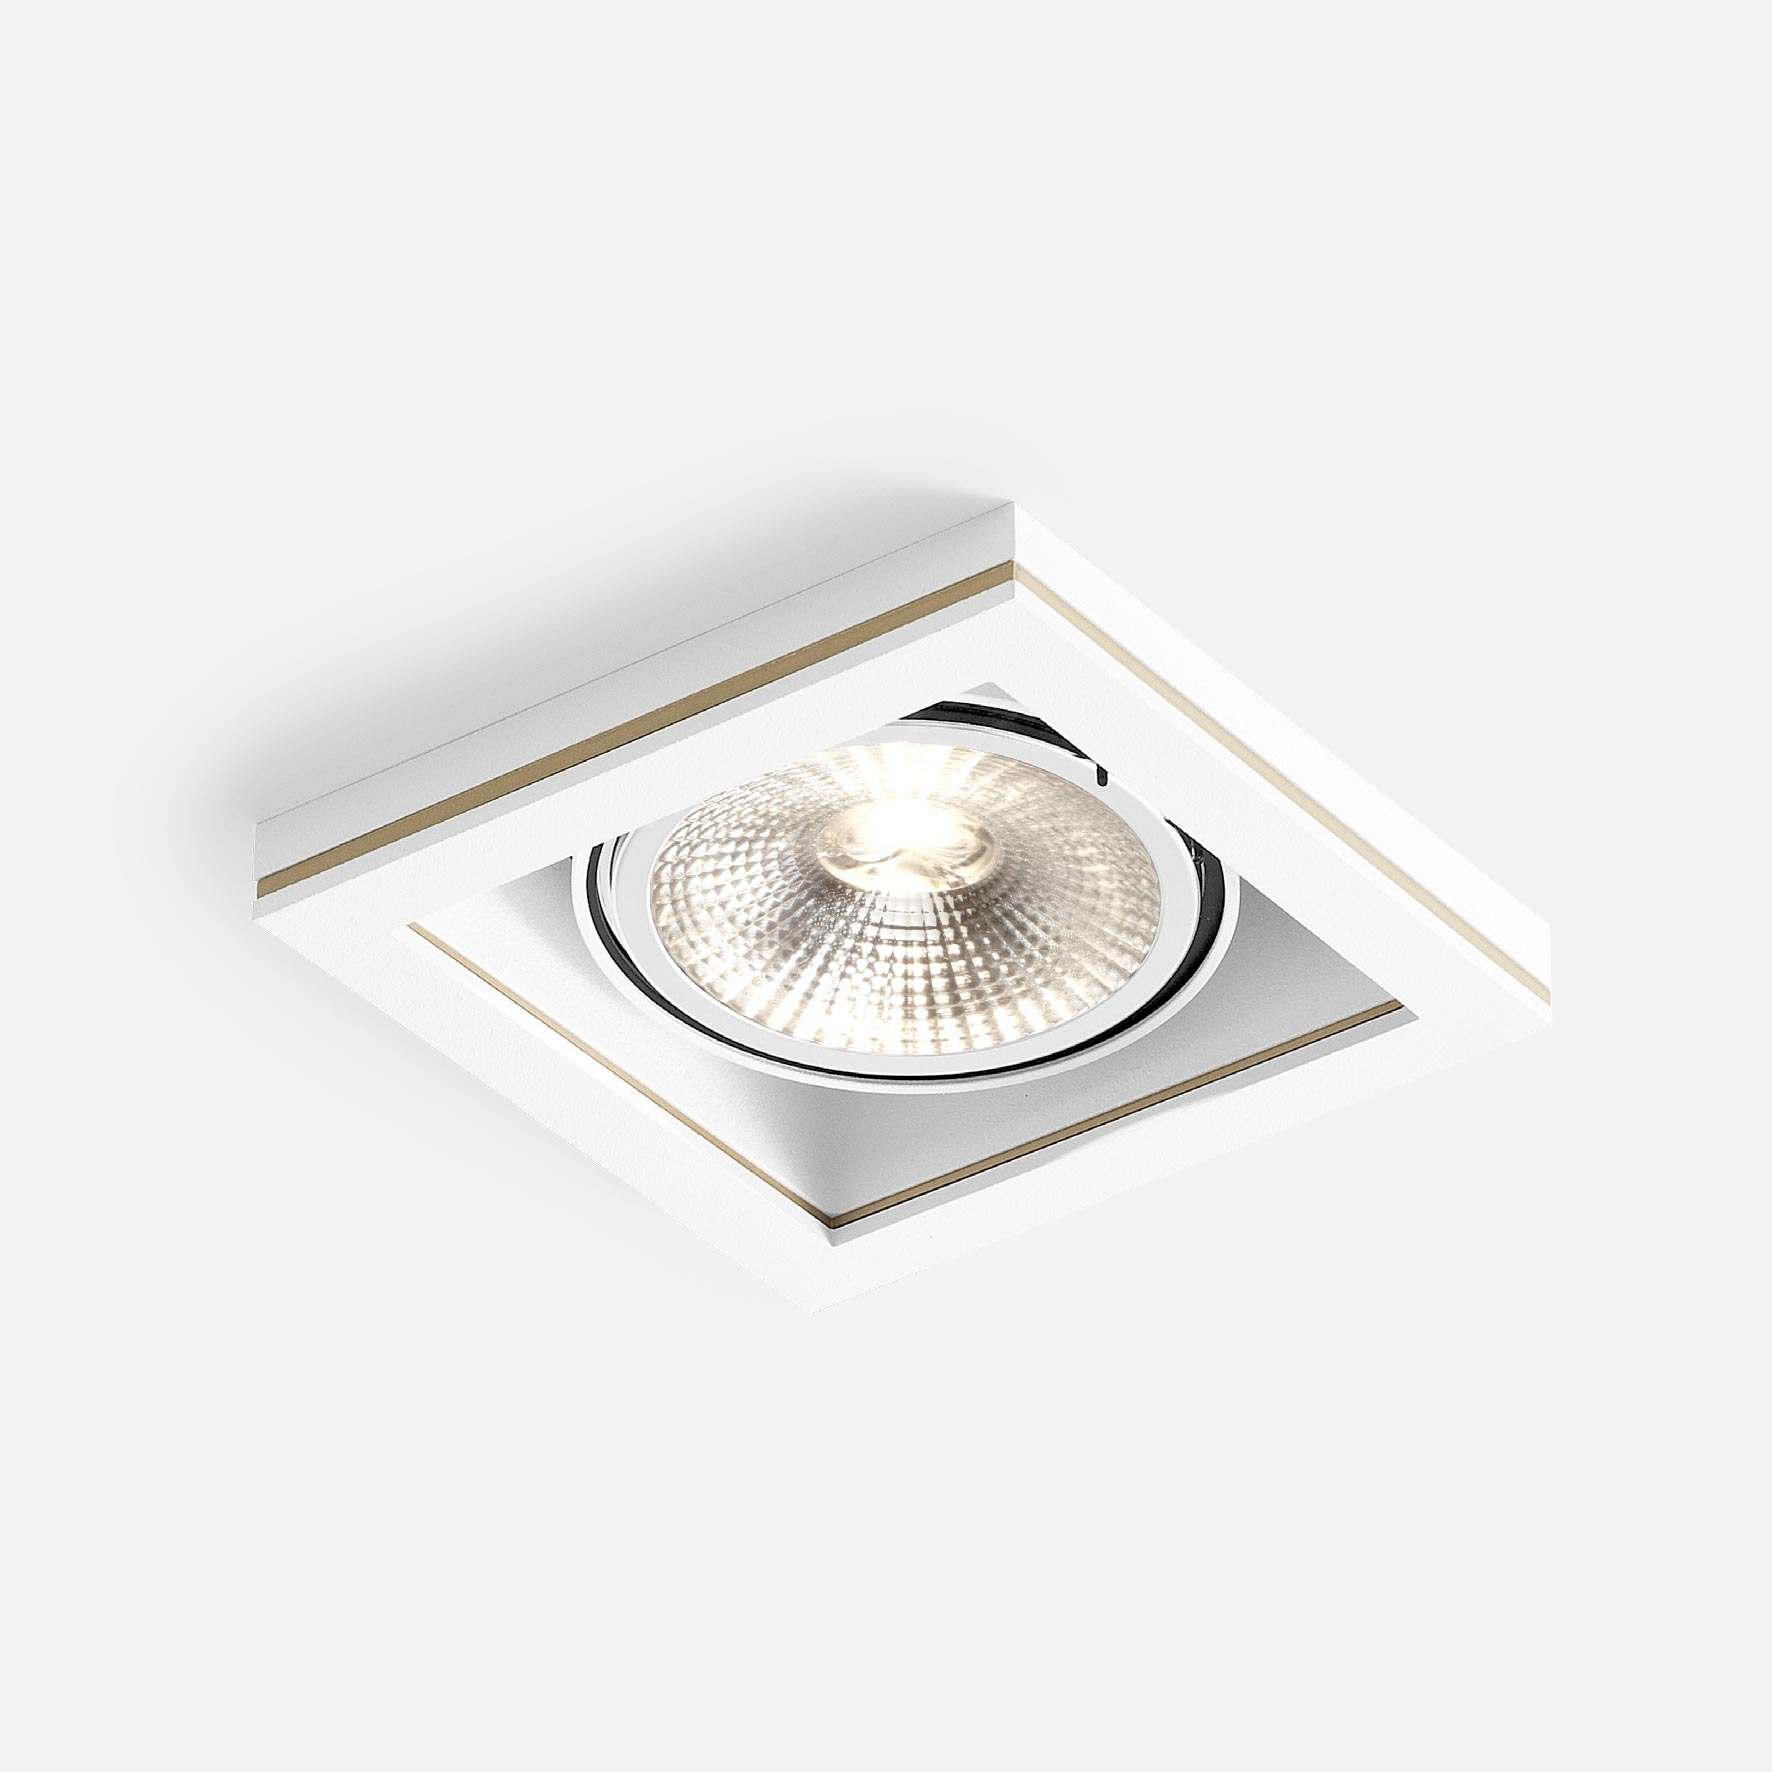 Cocoz square 1.0 led111 white texture gold 2700k